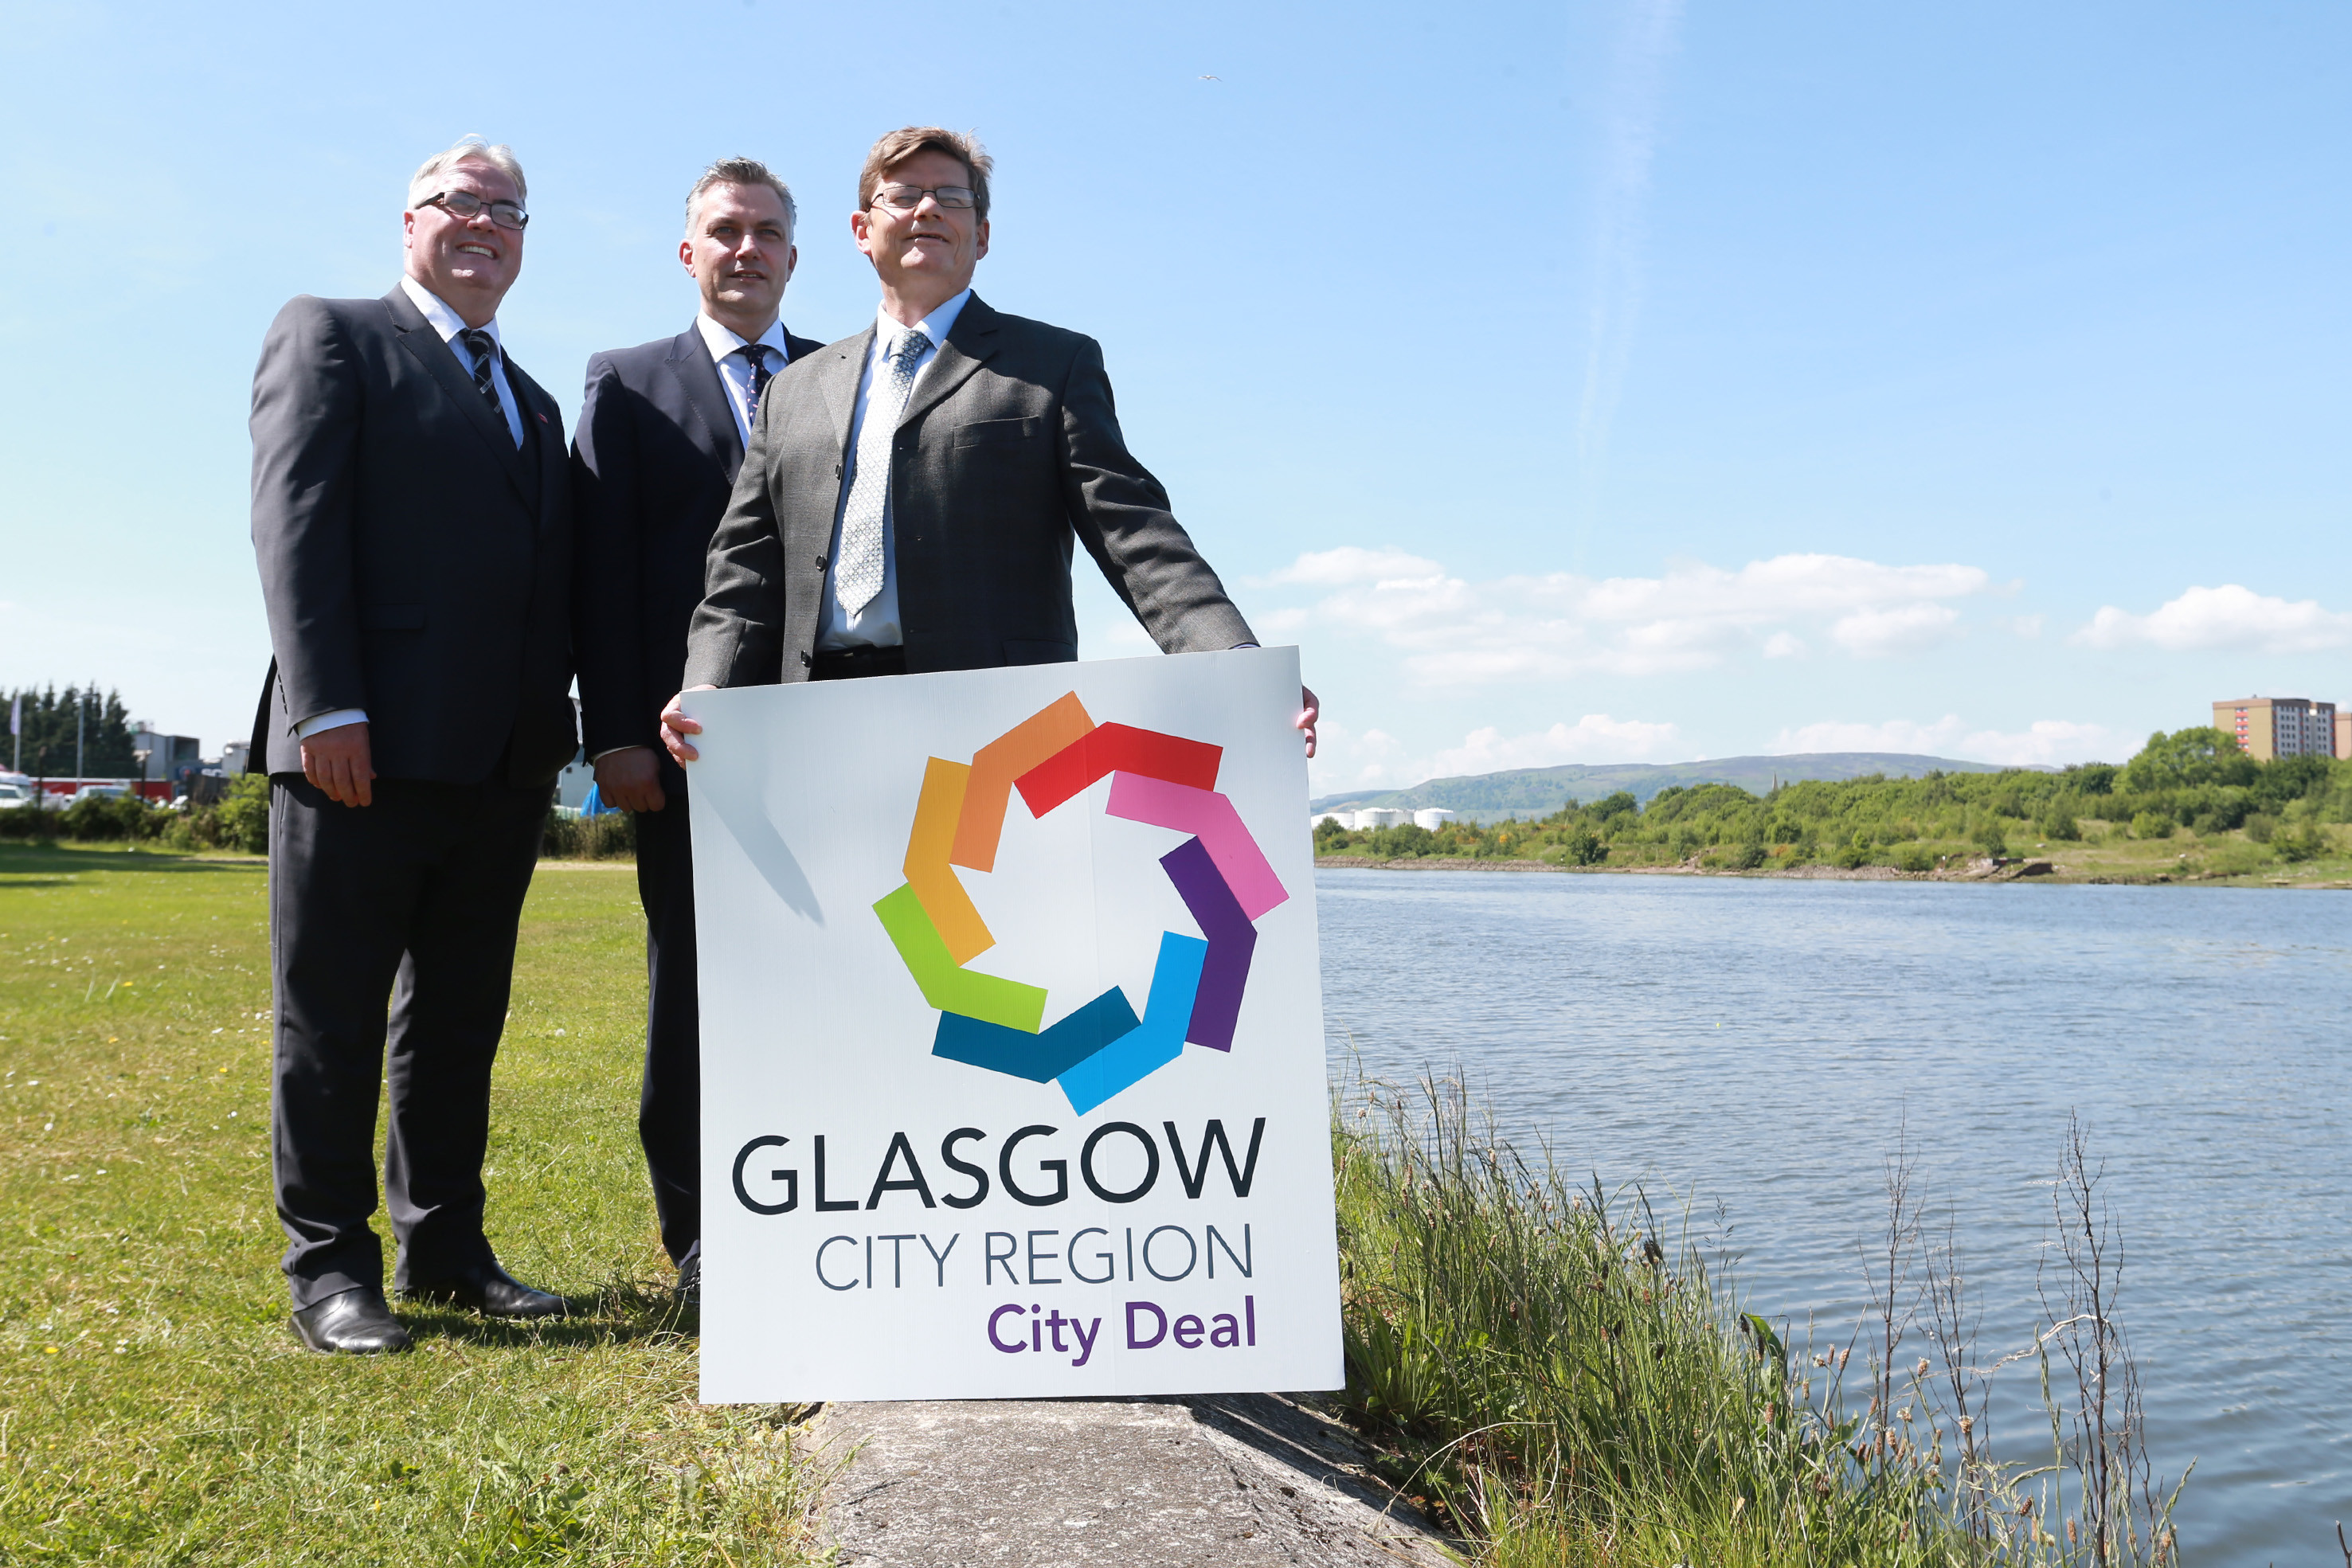 """New City Deal Clyde Bridge-SA001.JPG  FREE FIRST USE Councillor Frank McAveety, Leader of Glasgow City Council , Councillor Martin Rooney, Leader of Dunbartonshire Council and Councillor Mark Macmillan, Leader of Renfrewshire Council  at the banks of the clyde near where the New City Deal Clyde Bridge is to nee located. Council Leaders Back New City Deal Clyde Bridge Three council Leaders have teamed up to look at possible locations for a new bridge across the Clyde.The new bridge will be part of the £78 million Clyde Waterfront and Renfrew Riverside Project and funded by Glasgow City Region City Deal.  The Leaders of West Dunbartonshire, Glasgow City and Renfrewshire Councils believe that it will bring 'significant investment, jobs and transport benefits to communities on both sides of the river and throughout the City Region.'This will be an exciting addition to the Clyde and its only opening road bridge. It will also be the only road crossing between the Clyde Tunnel and the Erskine Bridge. Councillor Martin Rooney, Leader of Dunbartonshire Council said, """"This landmark bridge will put our communities right at the heart of the regional economy.  It will have a positive impact on local life and help to create a thriving future where businesses can grow and residents can take advantage of new connections to employment, leisure and educational opportunities.""""The project will increase the potential for business growth by improving their connections with customers and suppliers.  It will also enhance access to land which is currently underused or derelict; unlocking the potential for regeneration and new developments in the Yoker, Clydebank and Renfrew areas.The Glasgow City Region City Deal is investing £1.1 billion on infrastructure. £300 million of this will be spent on projects in Dunbartonshire and Renfrewshire: the £28m Exxon site development at Bowling, the Glasgow Airport Investment Area, and the new rail connection between Glasgow Central, Paisl"""